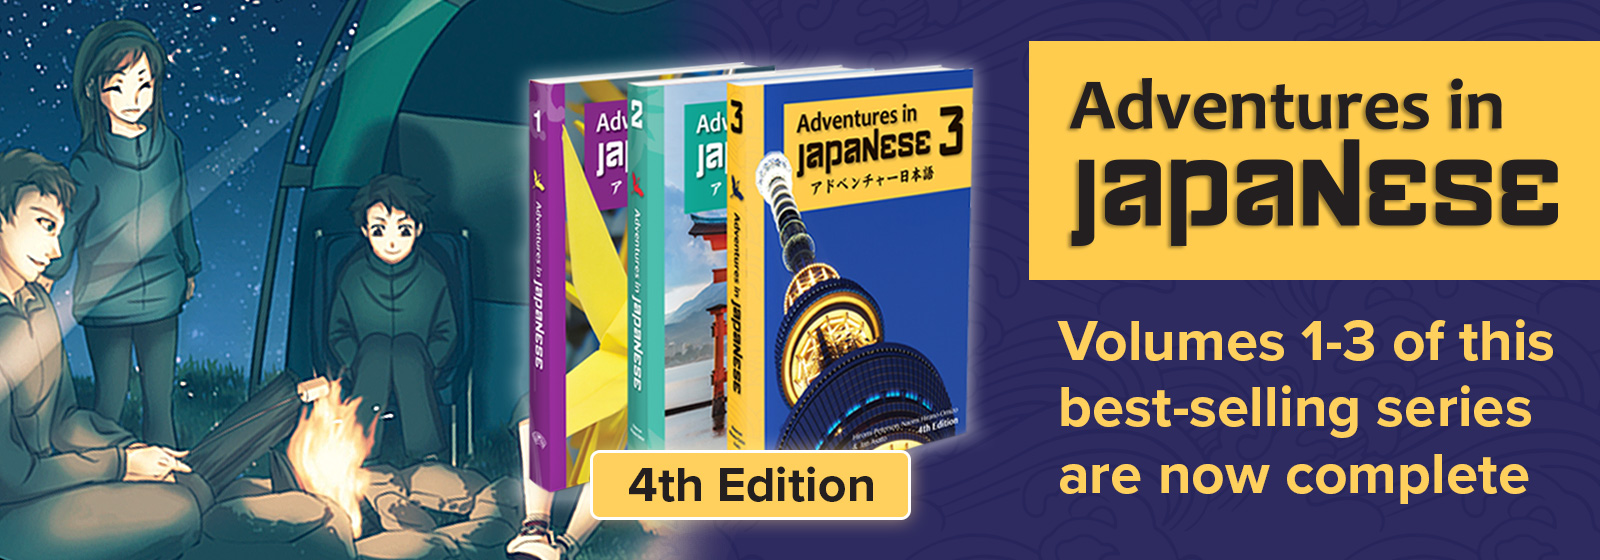 Adventures in Japanese 3rd Edition Available Now!